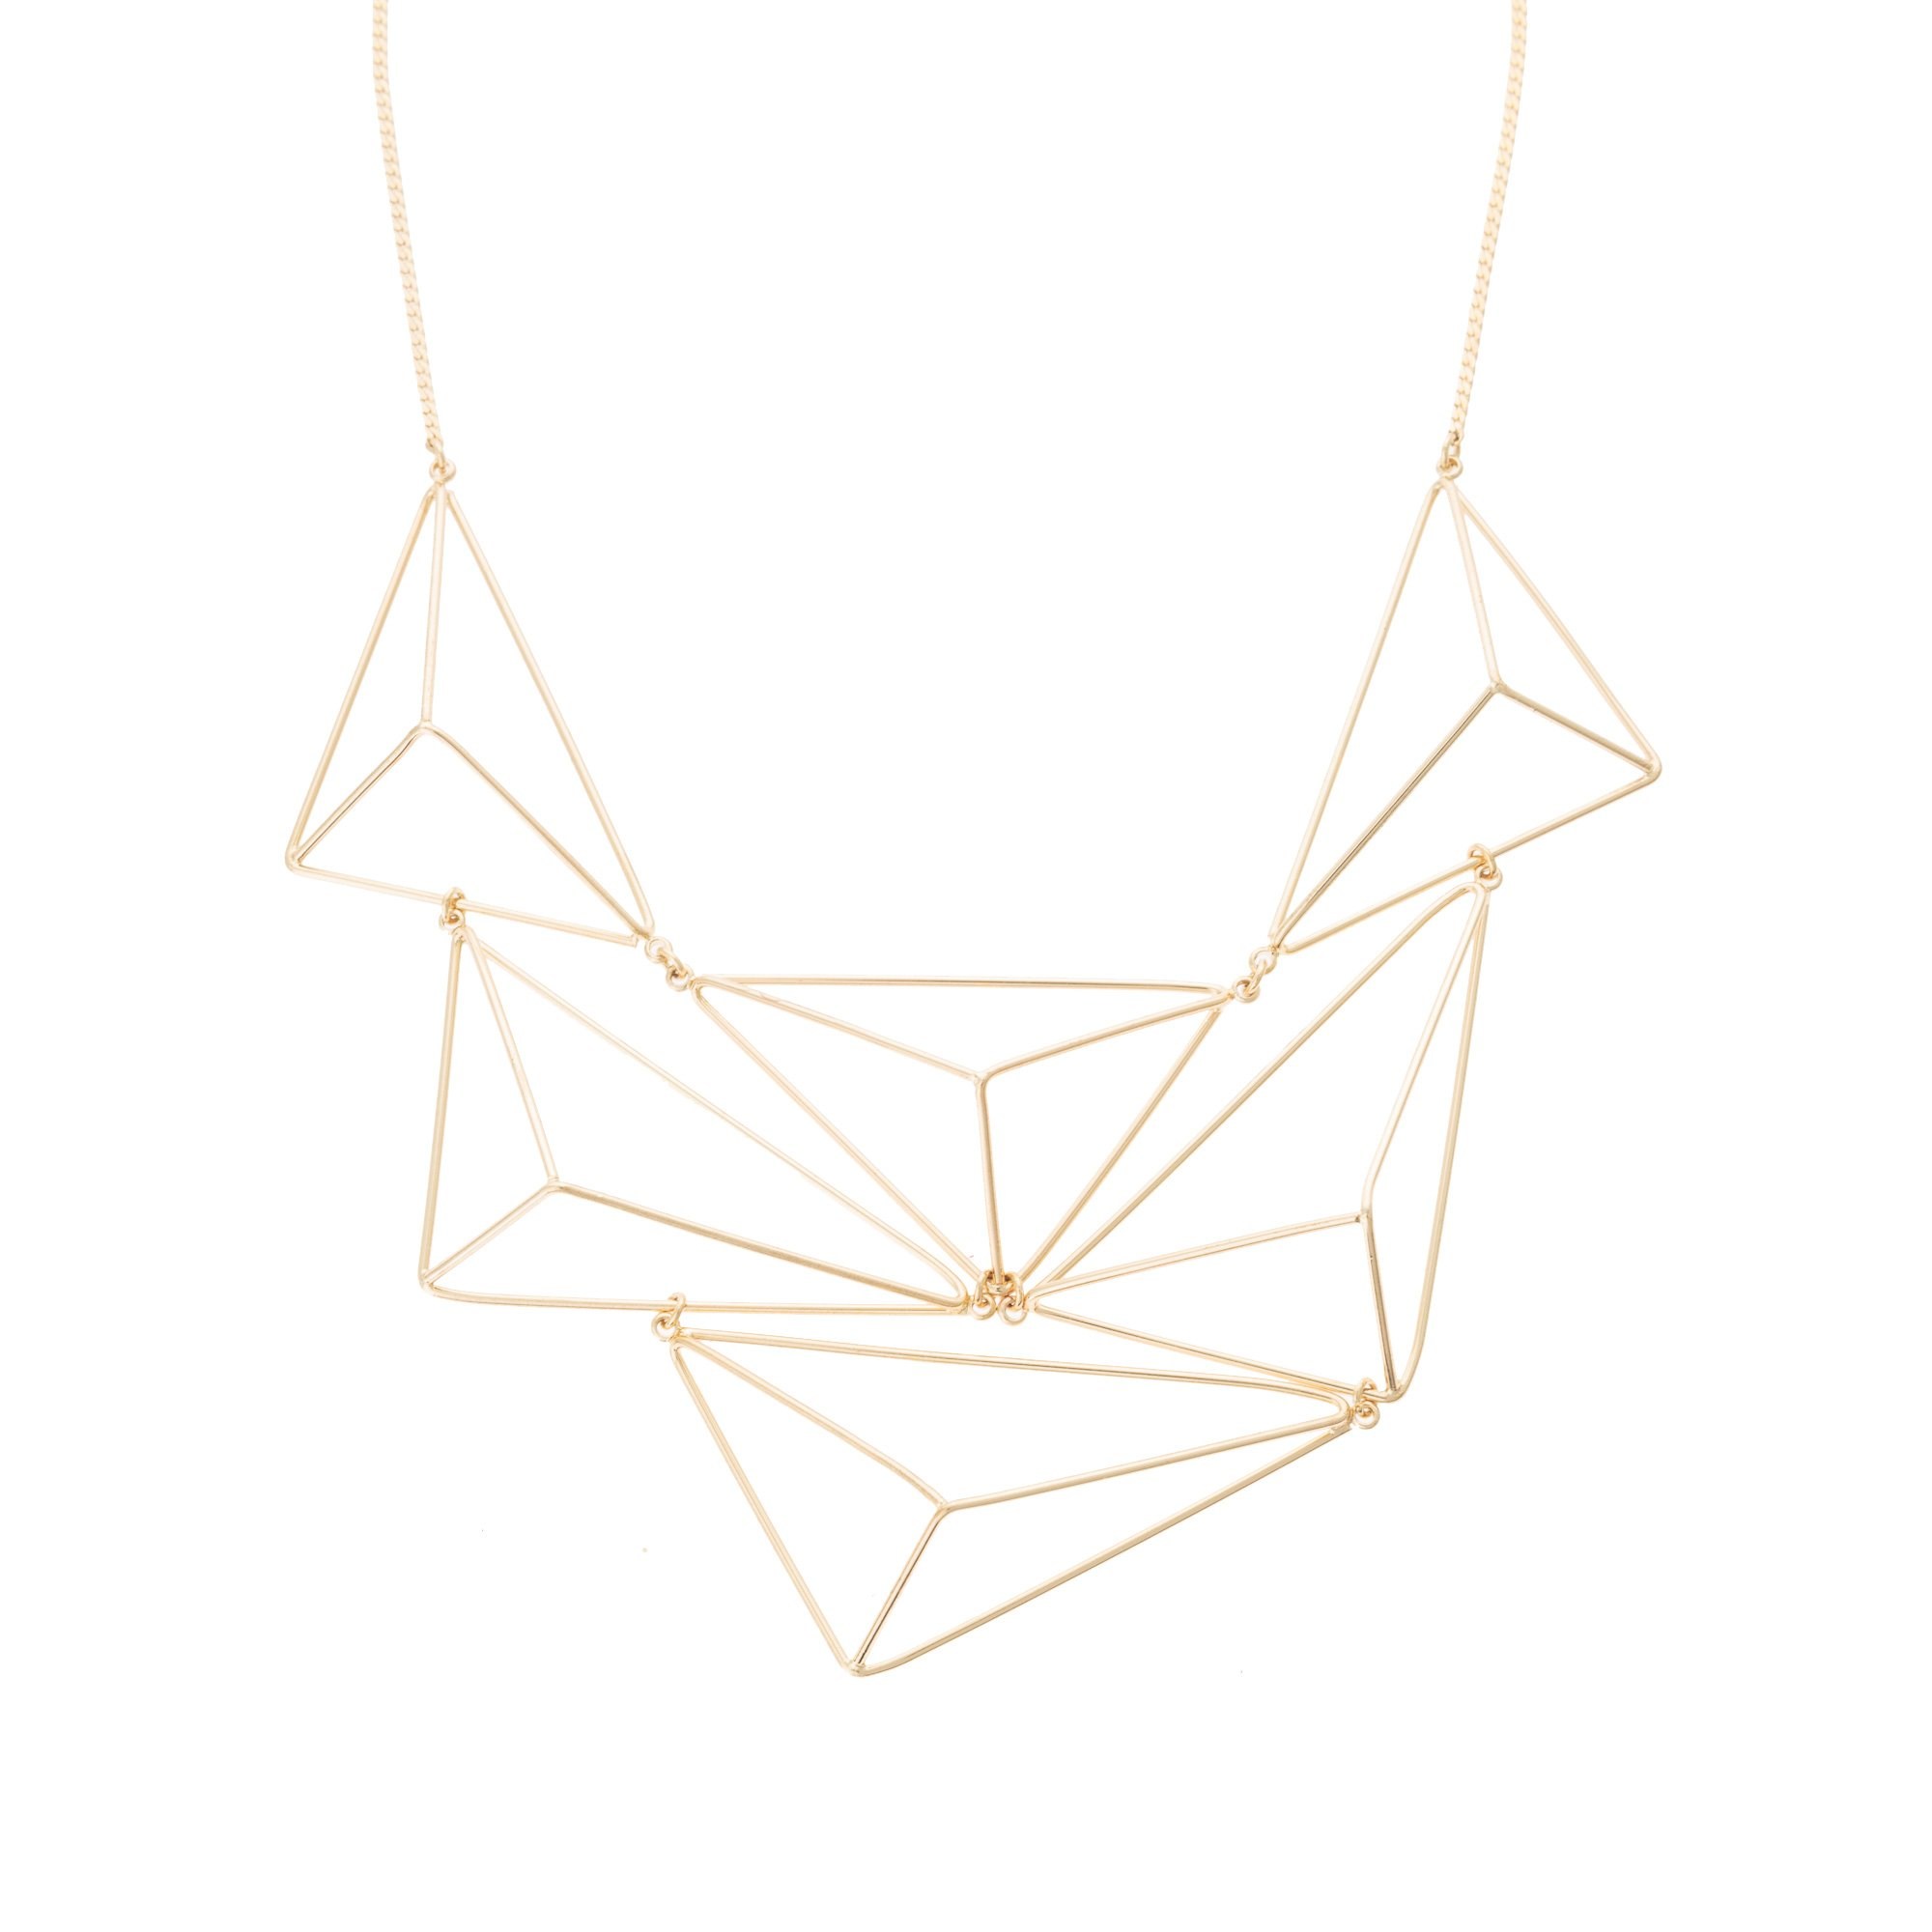 grey triangular jewellery marcie bonas oliver pendant stone necklace